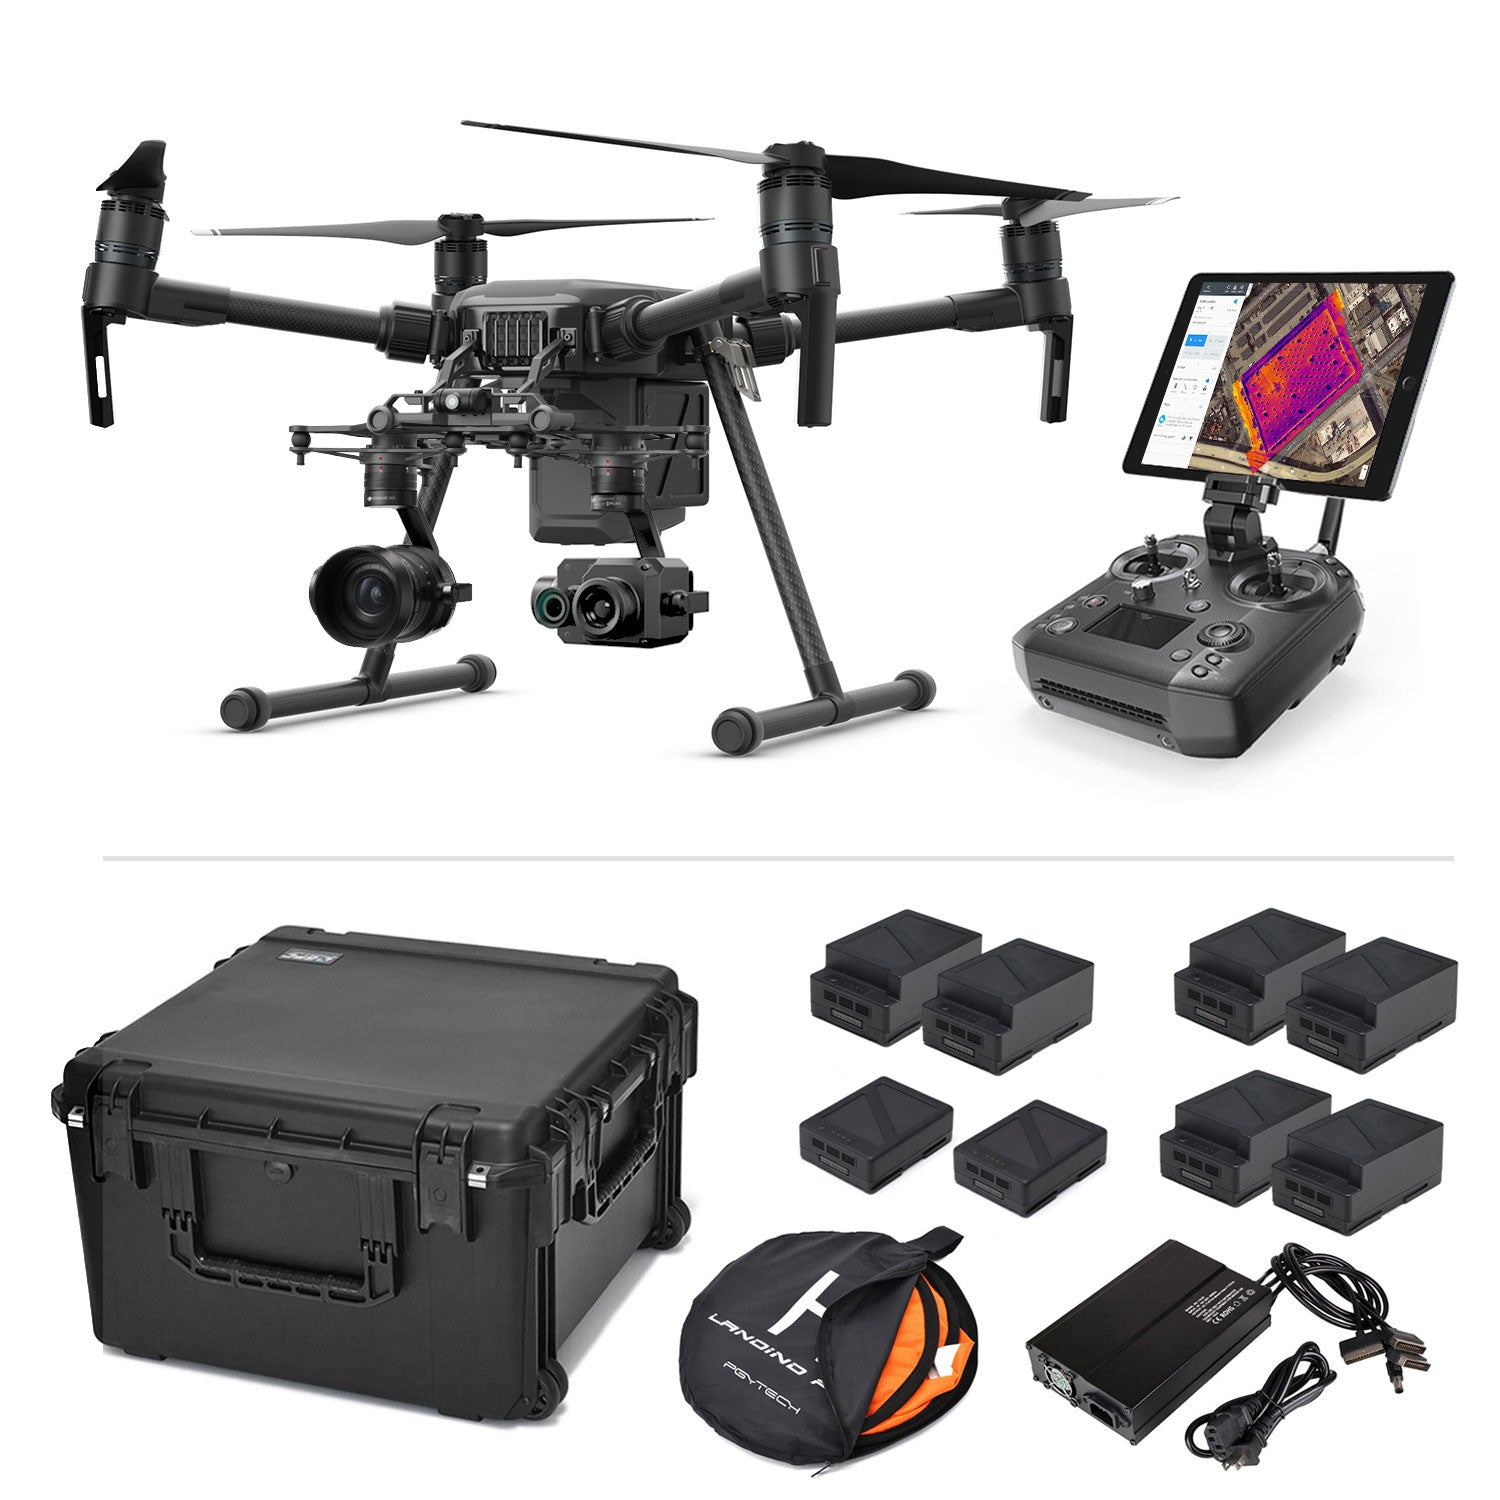 Survey Thermal Package - DJI Matrice 210 V2 with Zenmuse XT2 and X5S